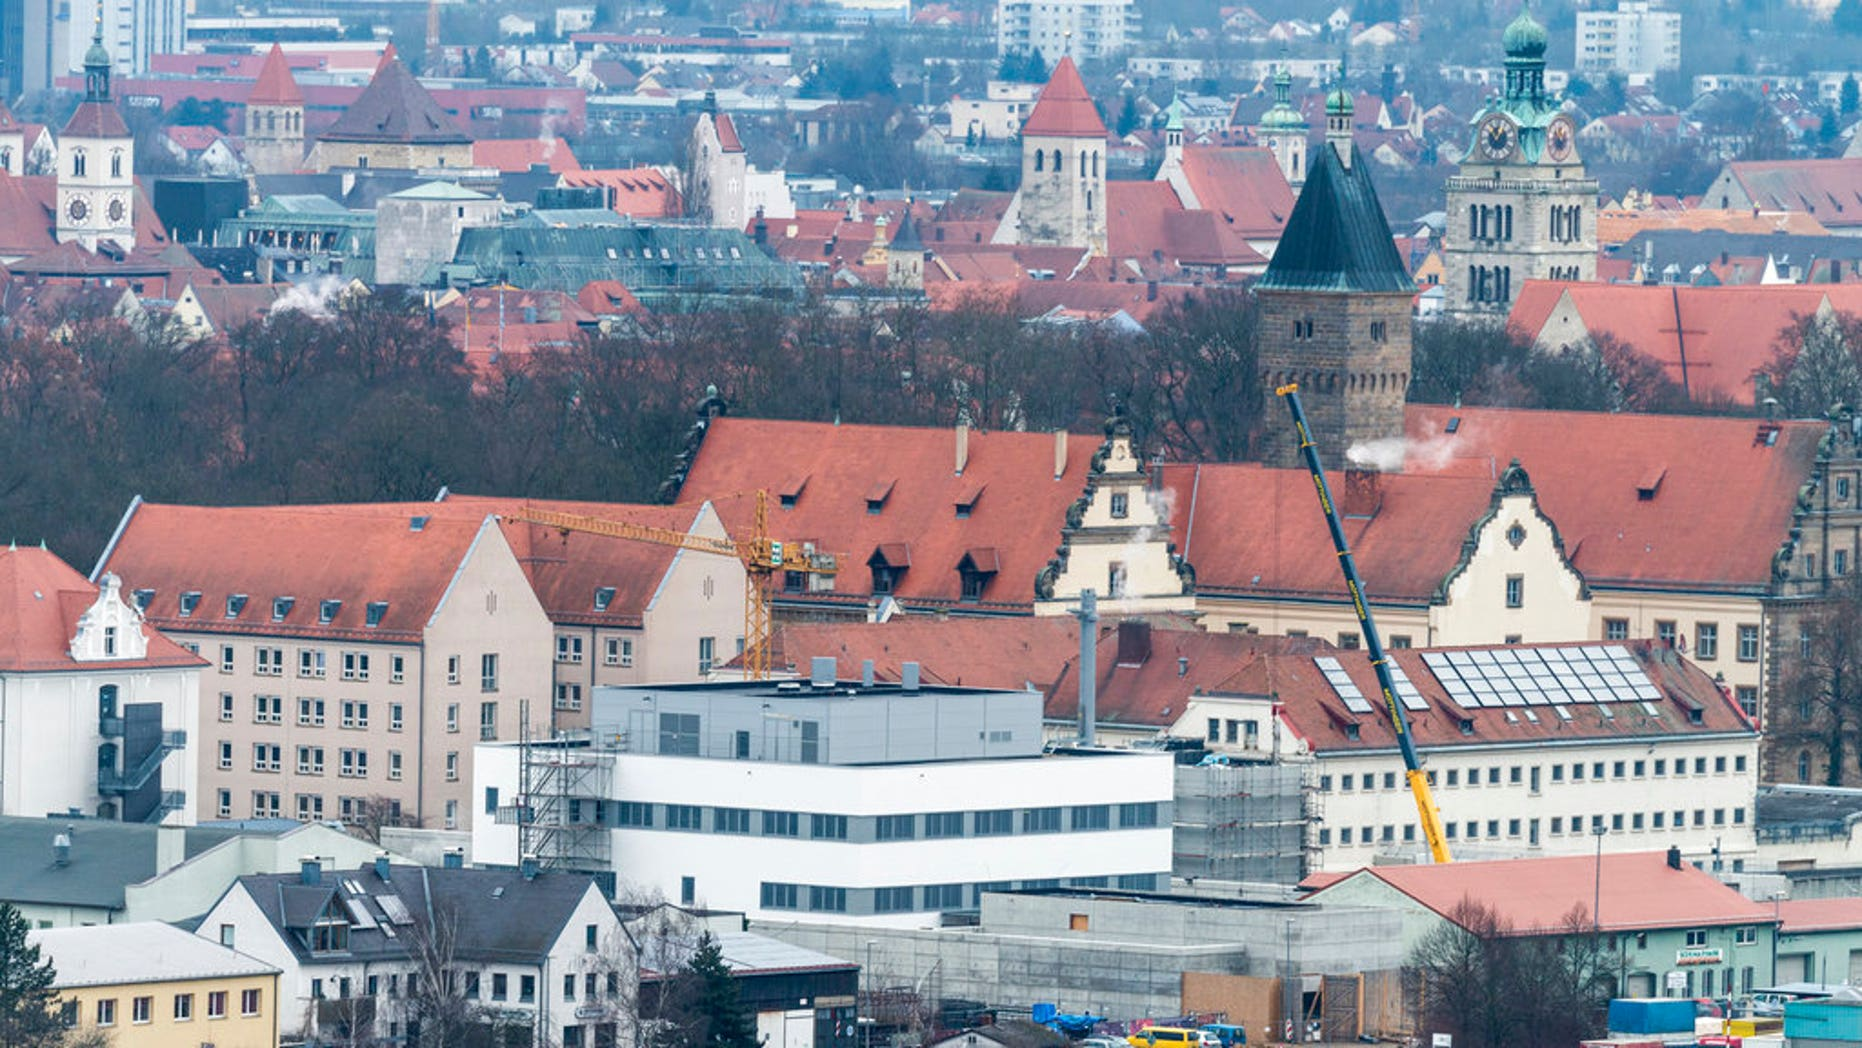 FILE - the Jan. 21, 2014 file photo shows the prison in Regensburg, southern Germany, which will be evacuated after a WWII bomb was found nearby, (Armin Weigel/dpa via AP)